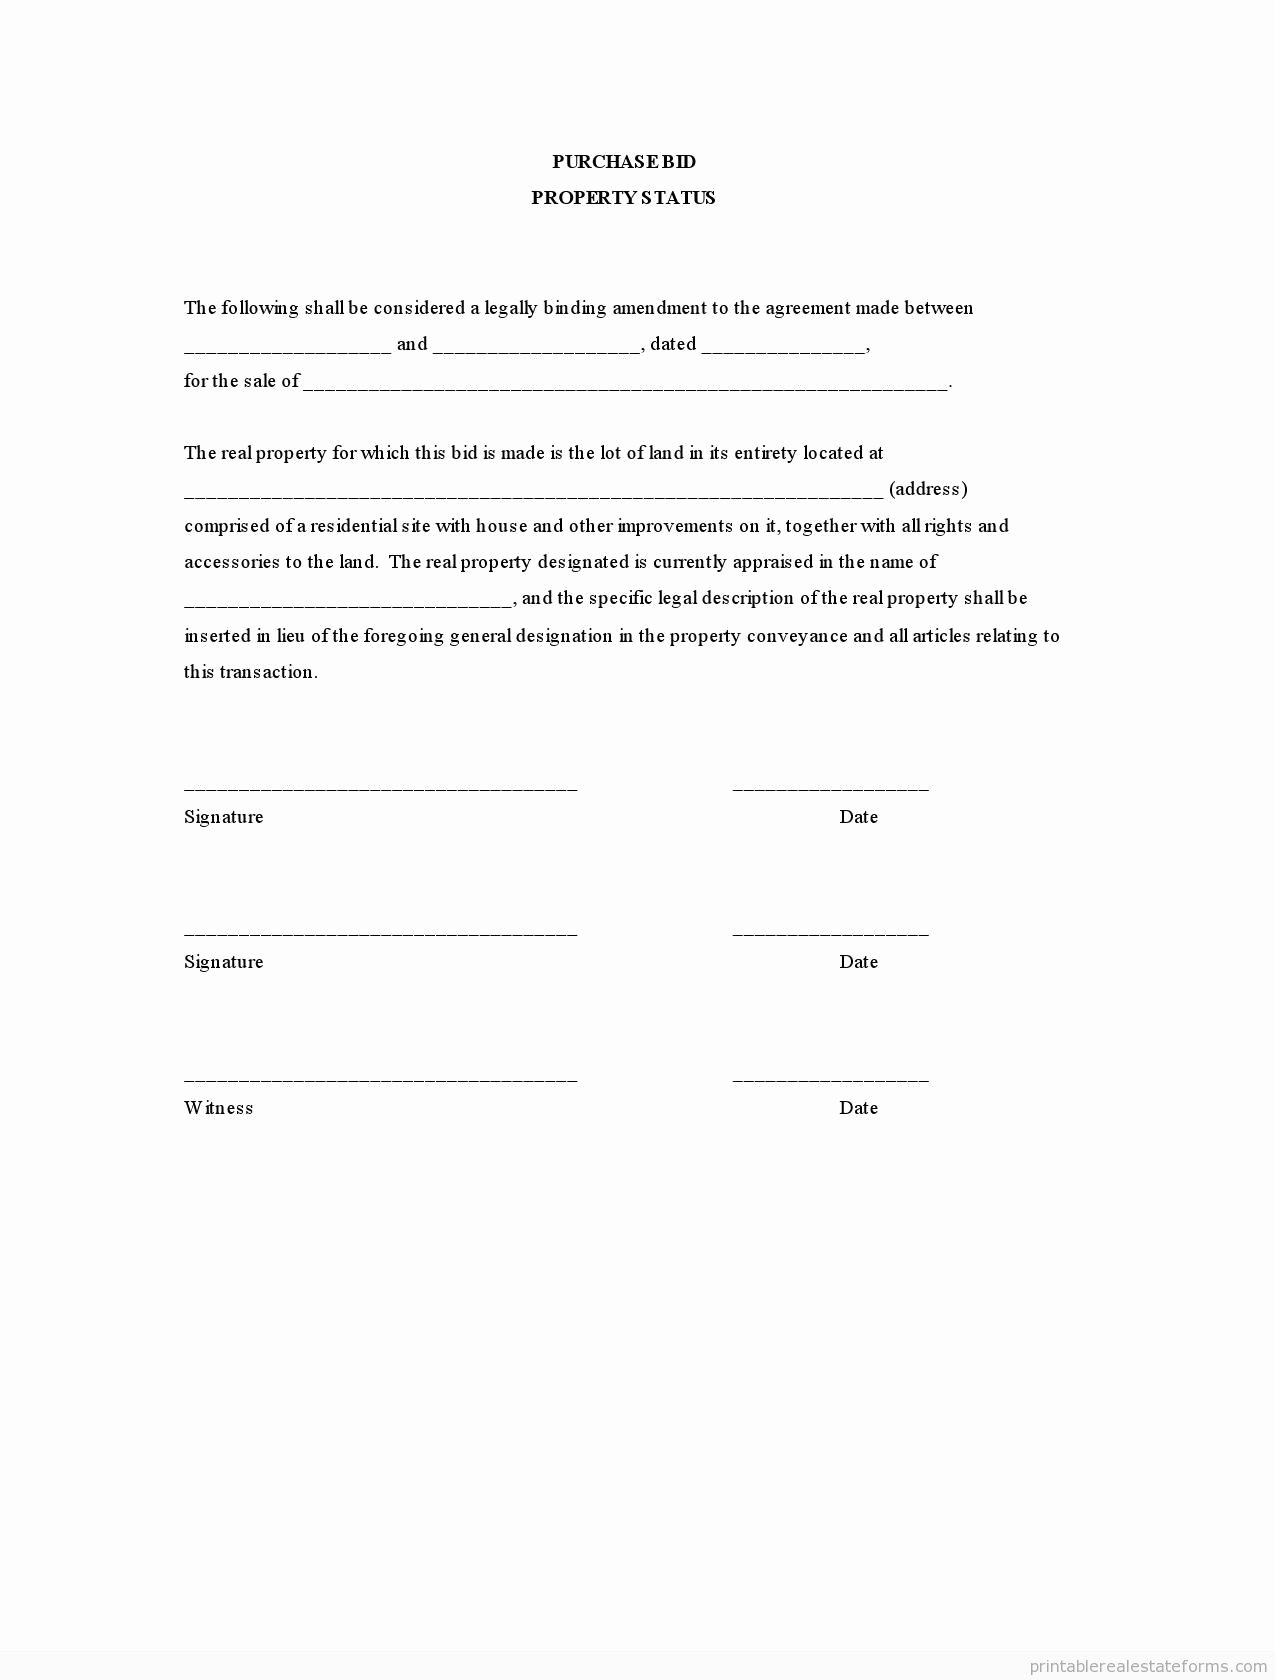 Simple Land Purchase Agreement form Unique Sample Printable Purchase Bid Property Status form